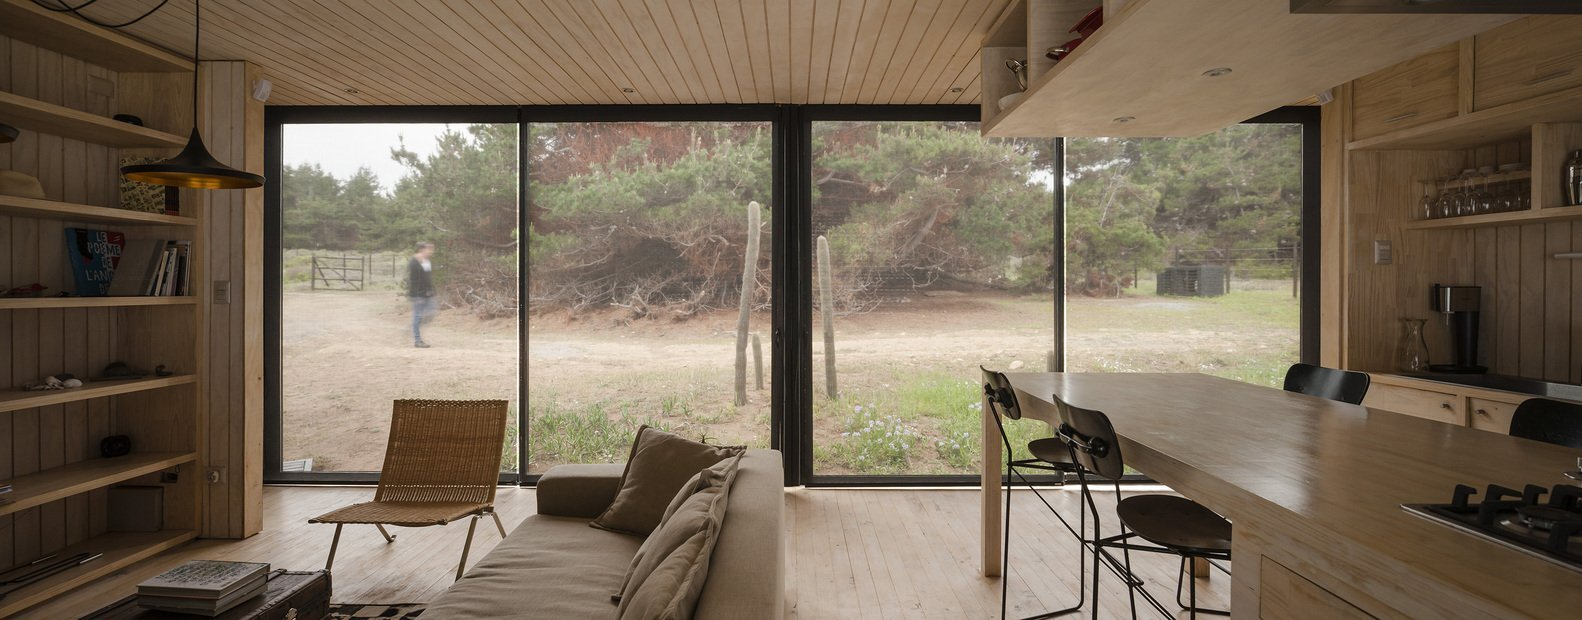 Remote House - Modular House - Felipe Assadi - Chile - Kitchen Dining Area - Humble Homes